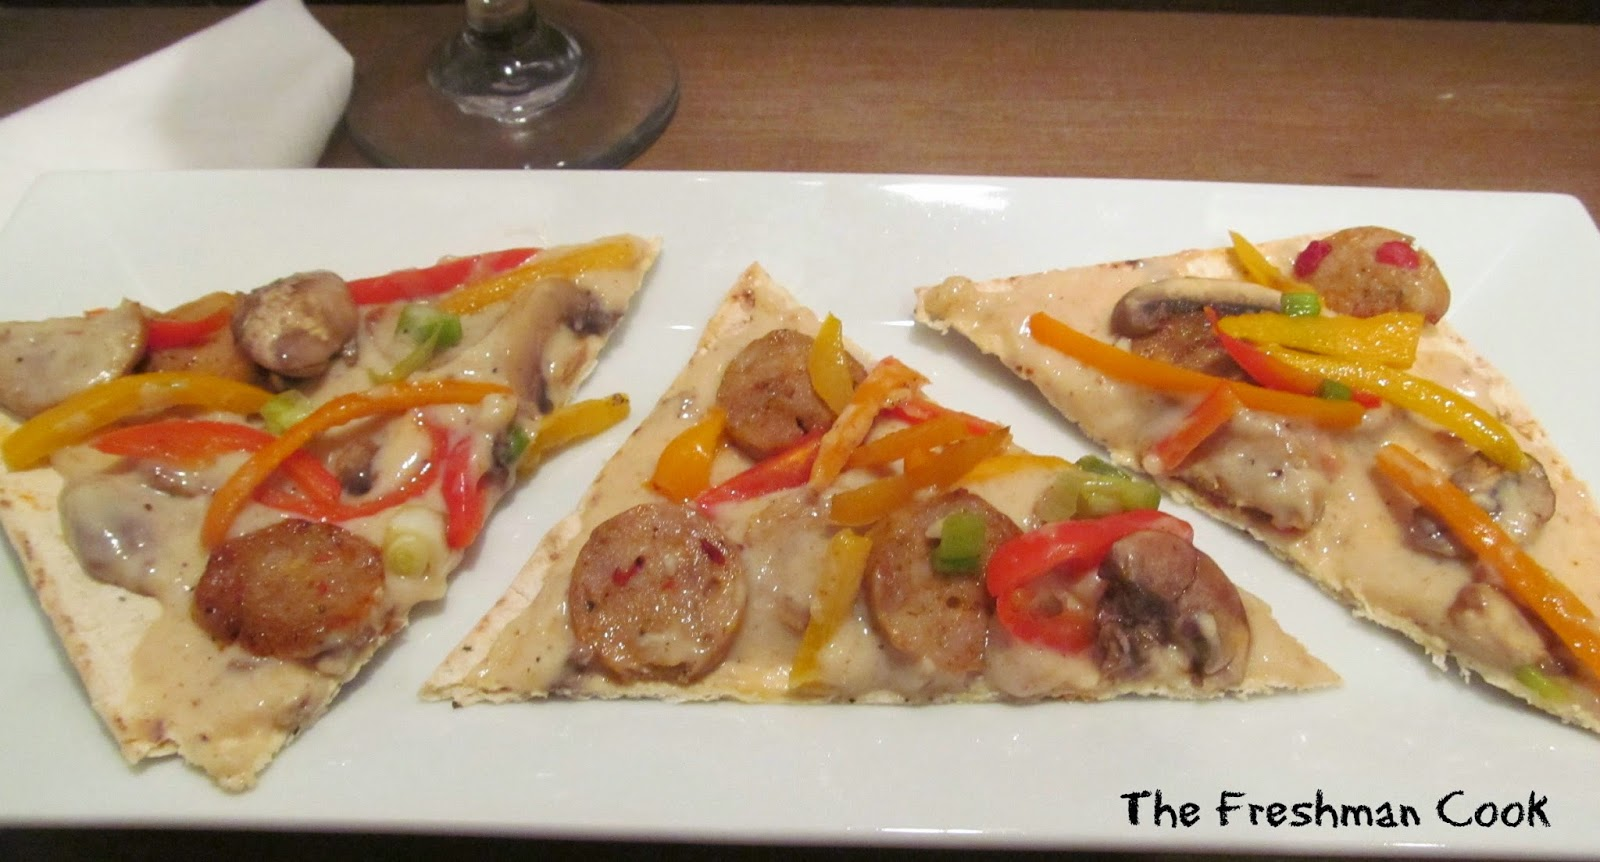 Flatbread appetizer with sausage and mushroom